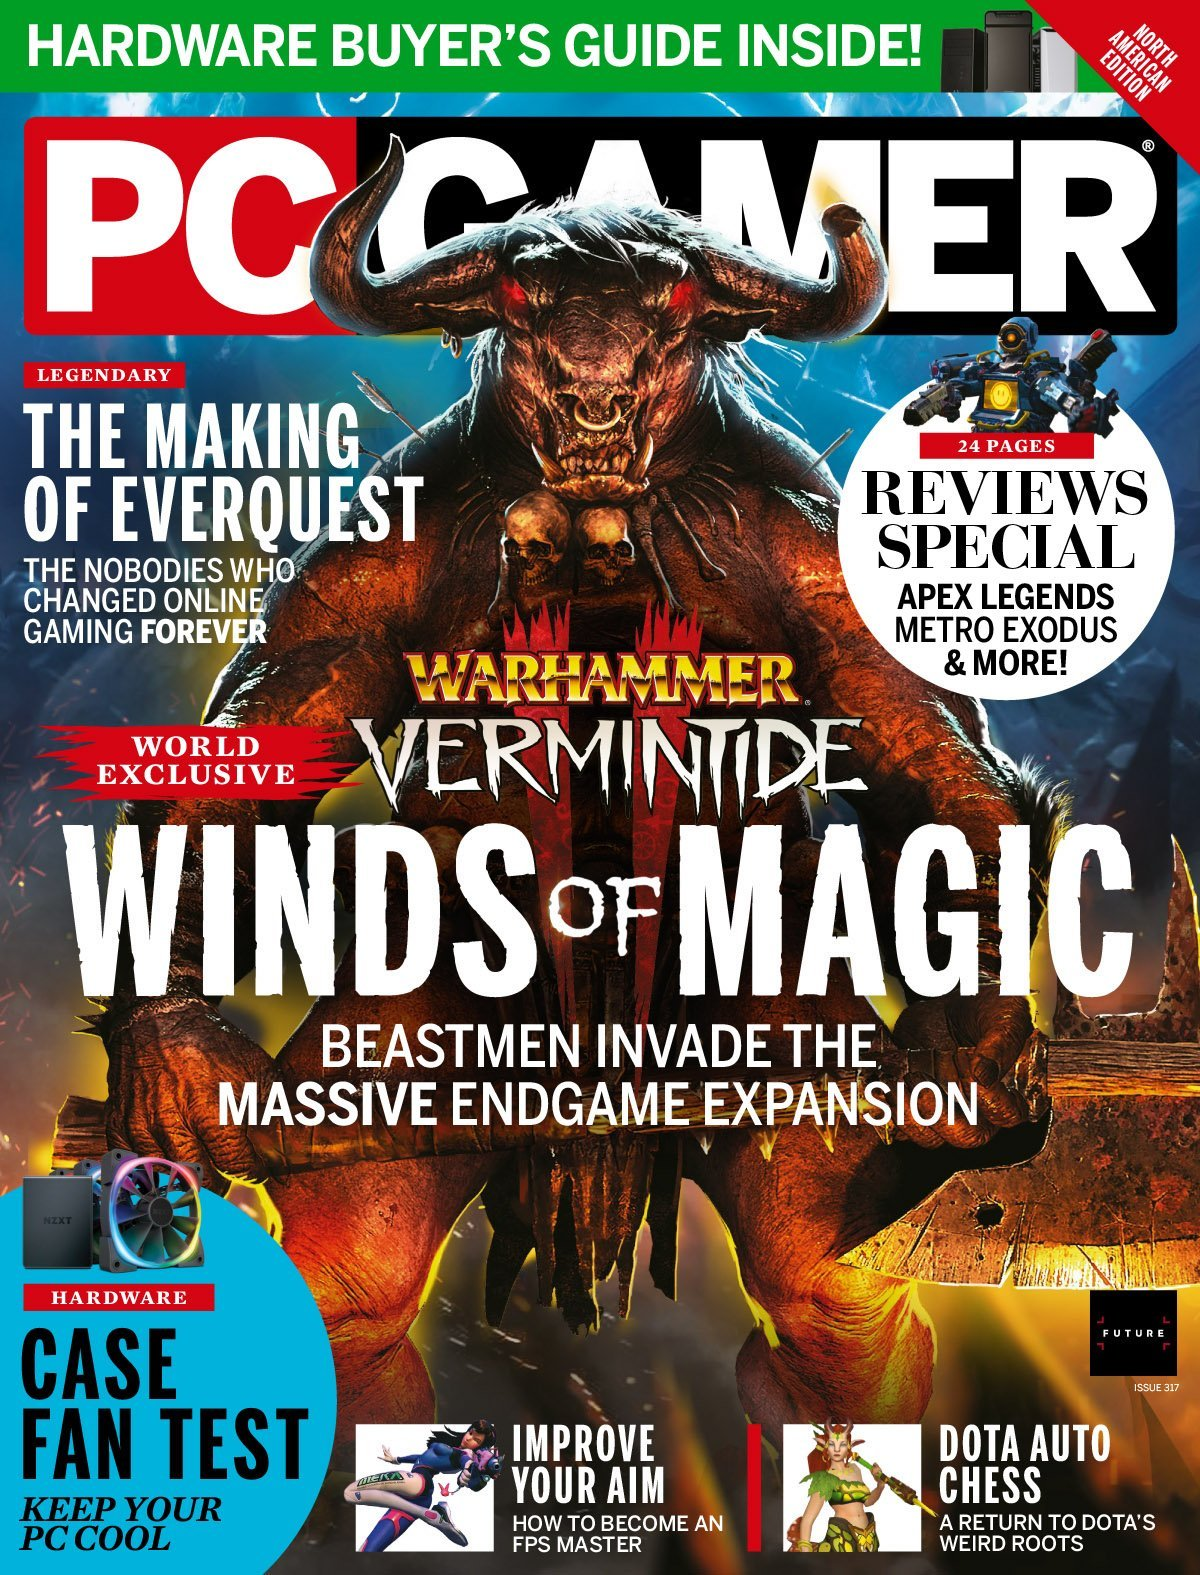 PC Gamer Issue 317 (May 2019)